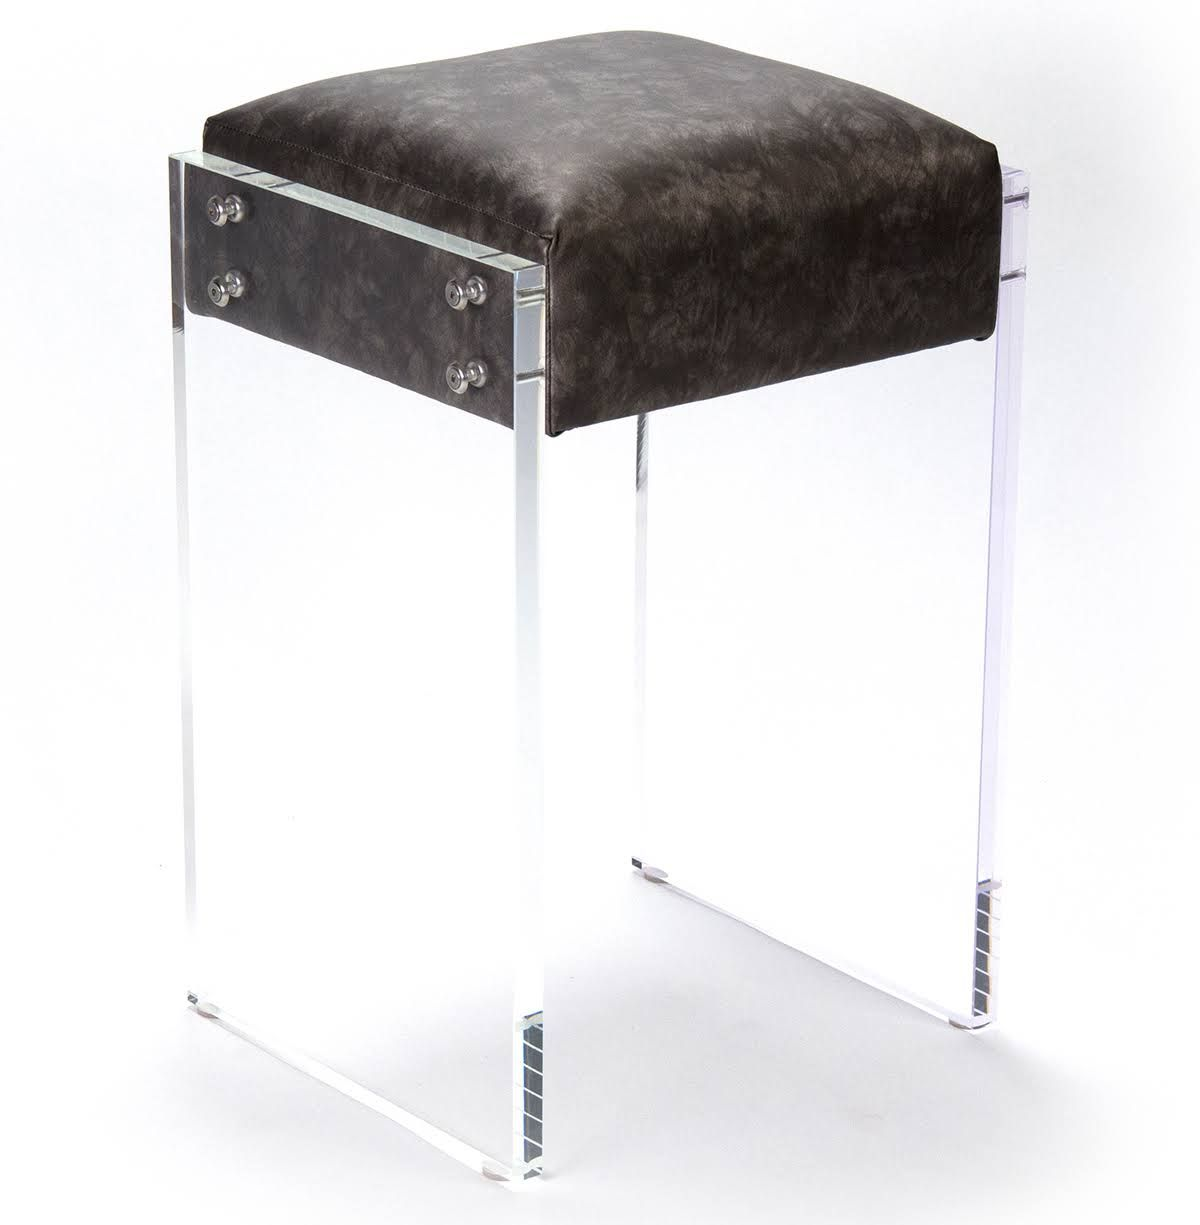 Zentique Modern Hollywood Regency Black Faux Leather Lucite Vanity Counter Stool Acrylic Counter Stools Counter Stools Stool